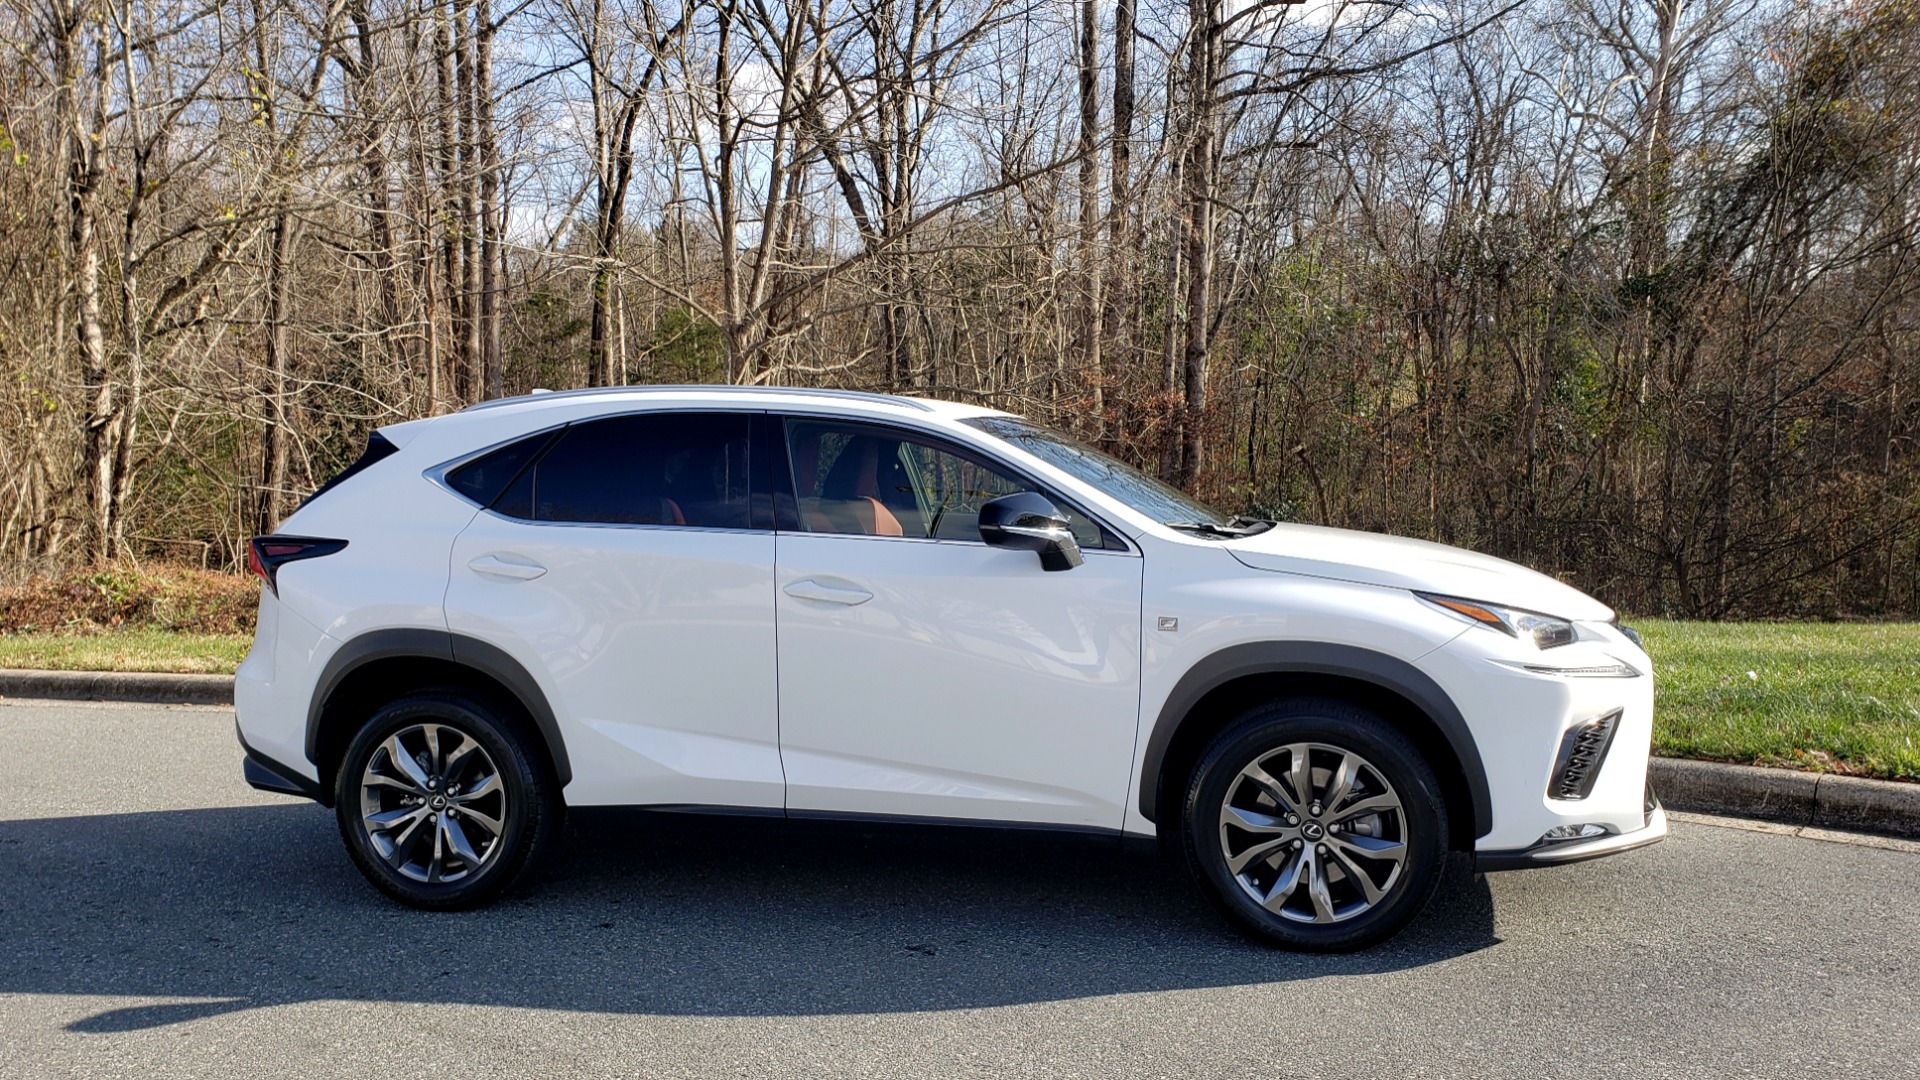 Used 2019 Lexus NX 300 F-SPORT / 2.0L TURBO / LEATHER / 18IN WHEELS / REARVIEW for sale $31,195 at Formula Imports in Charlotte NC 28227 5